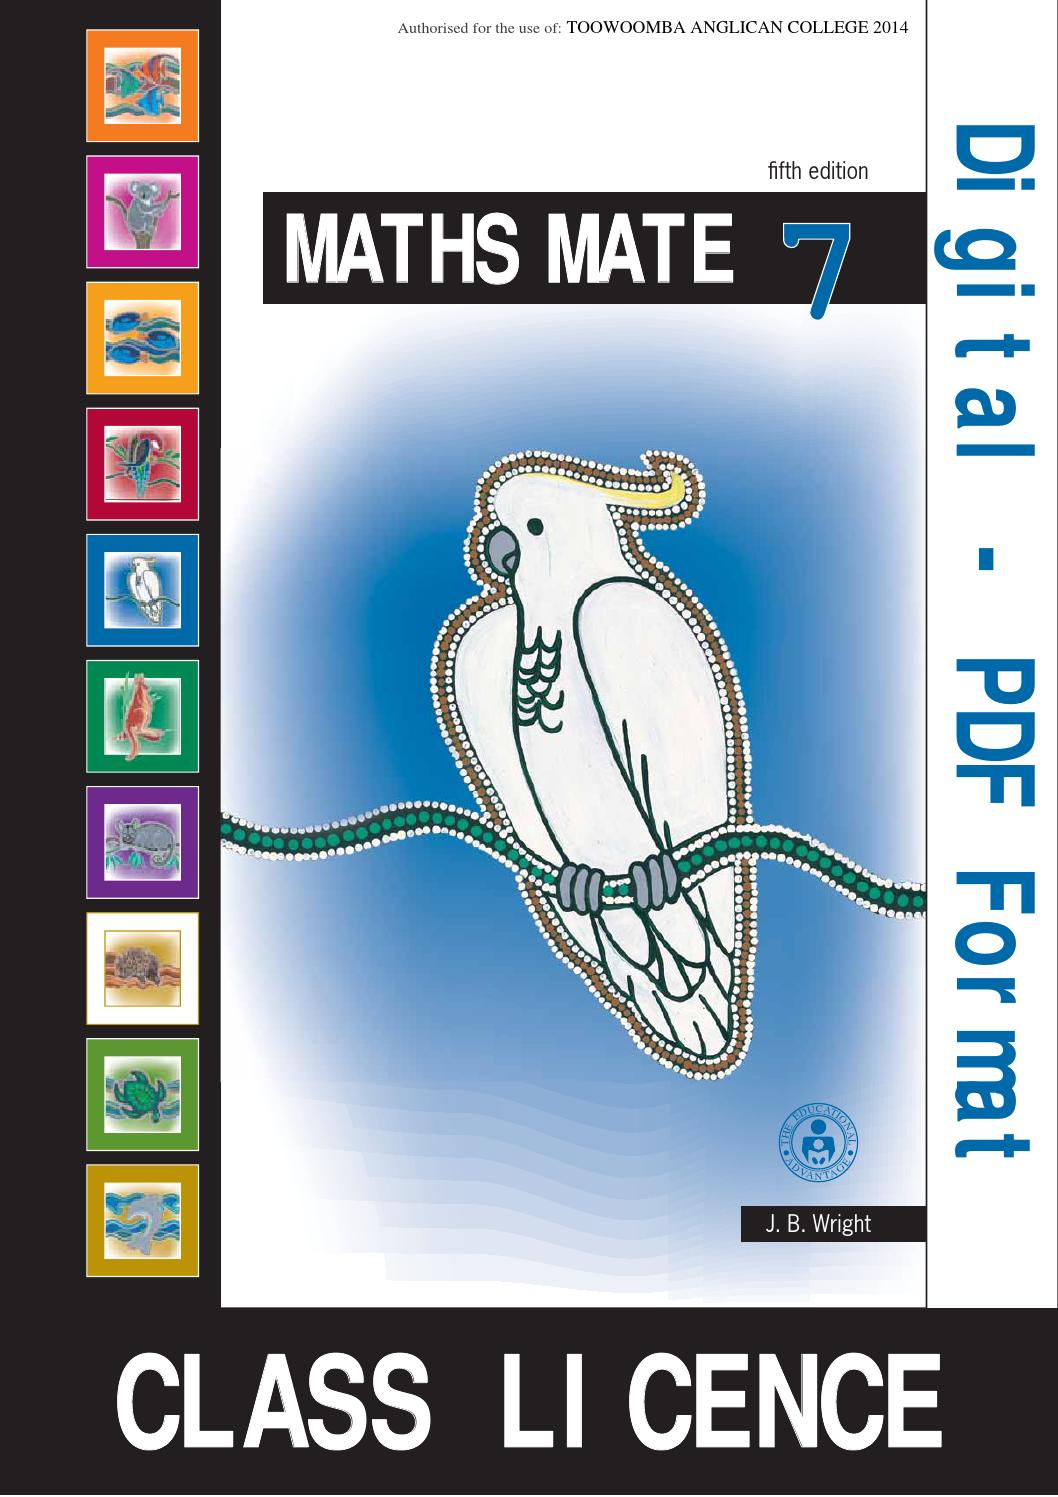 math worksheet : studentpad7classlicence 635249549259375000 by toowoomba anglican  : Math Mates Worksheets